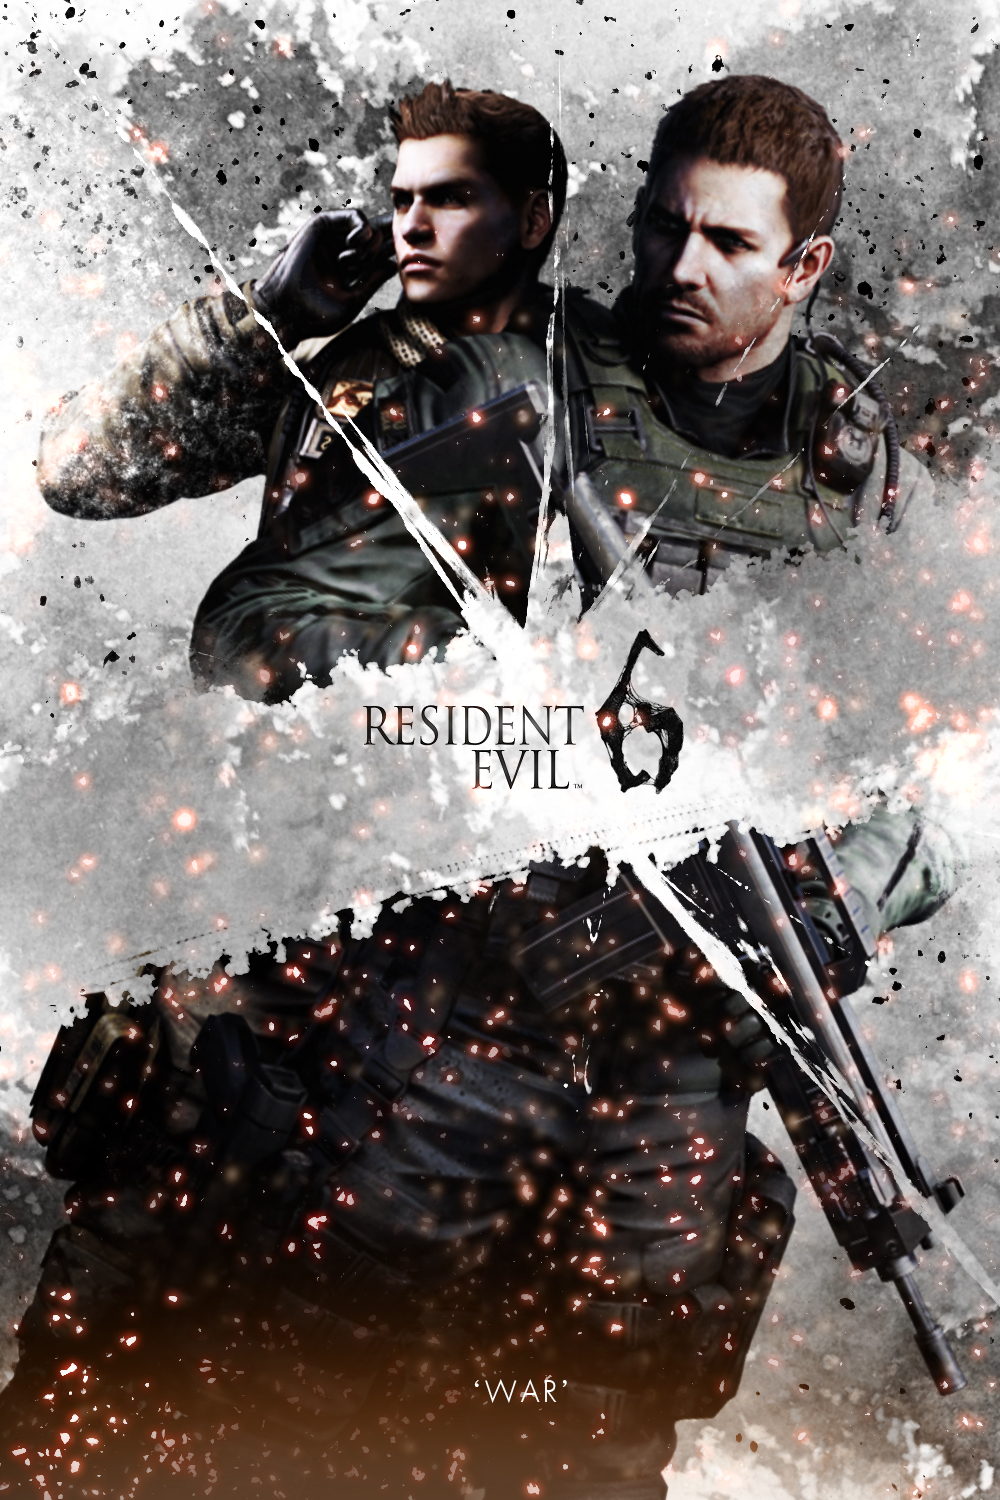 Resident Evil 6 Poster Fanart Chris Story By Kanombravo On